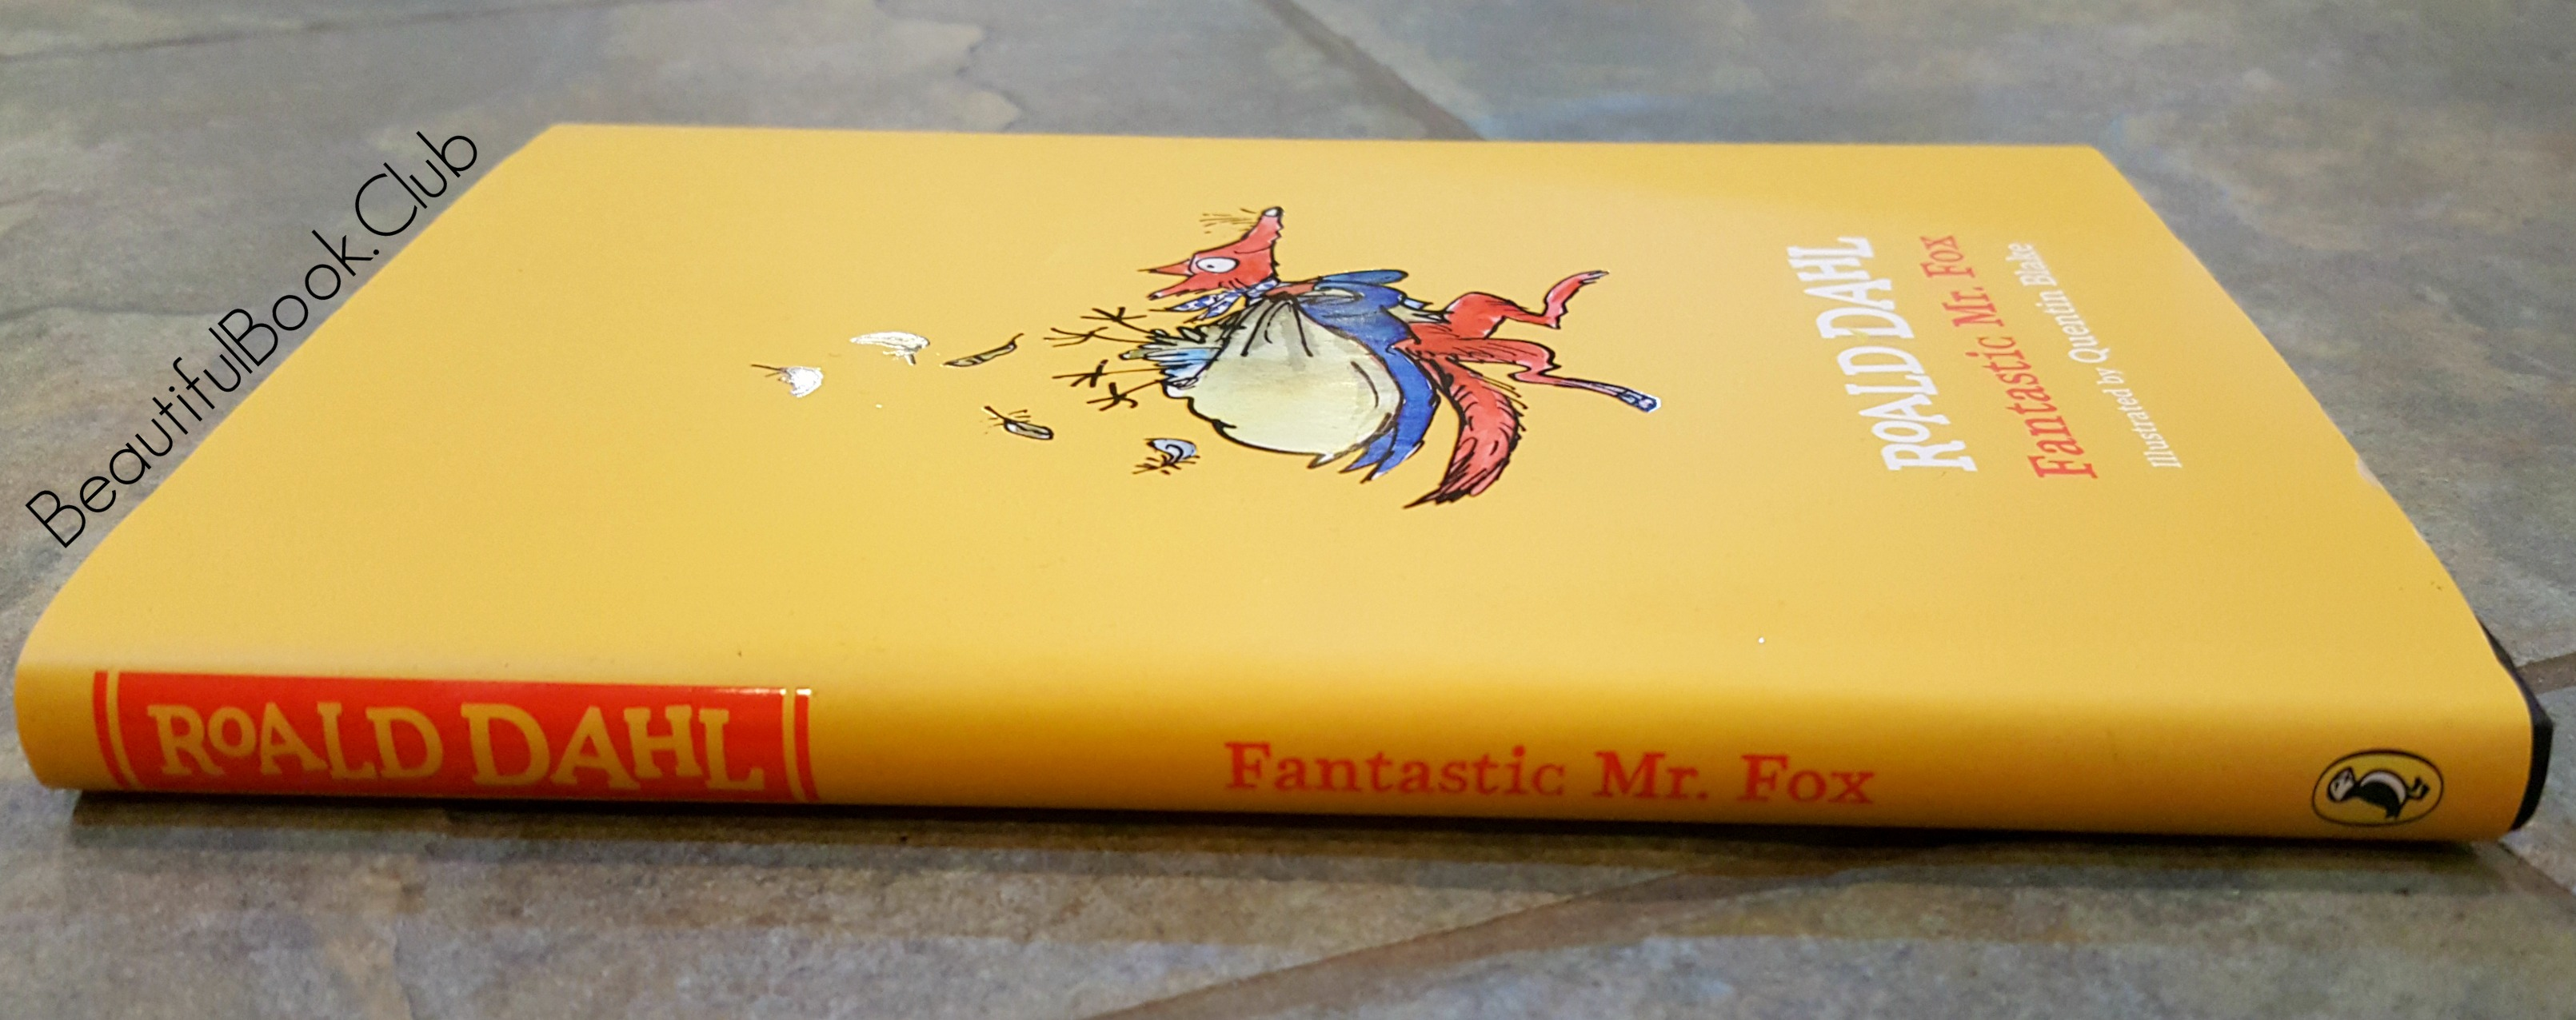 Roald Dahl Fantastic Mr. Fox Classic